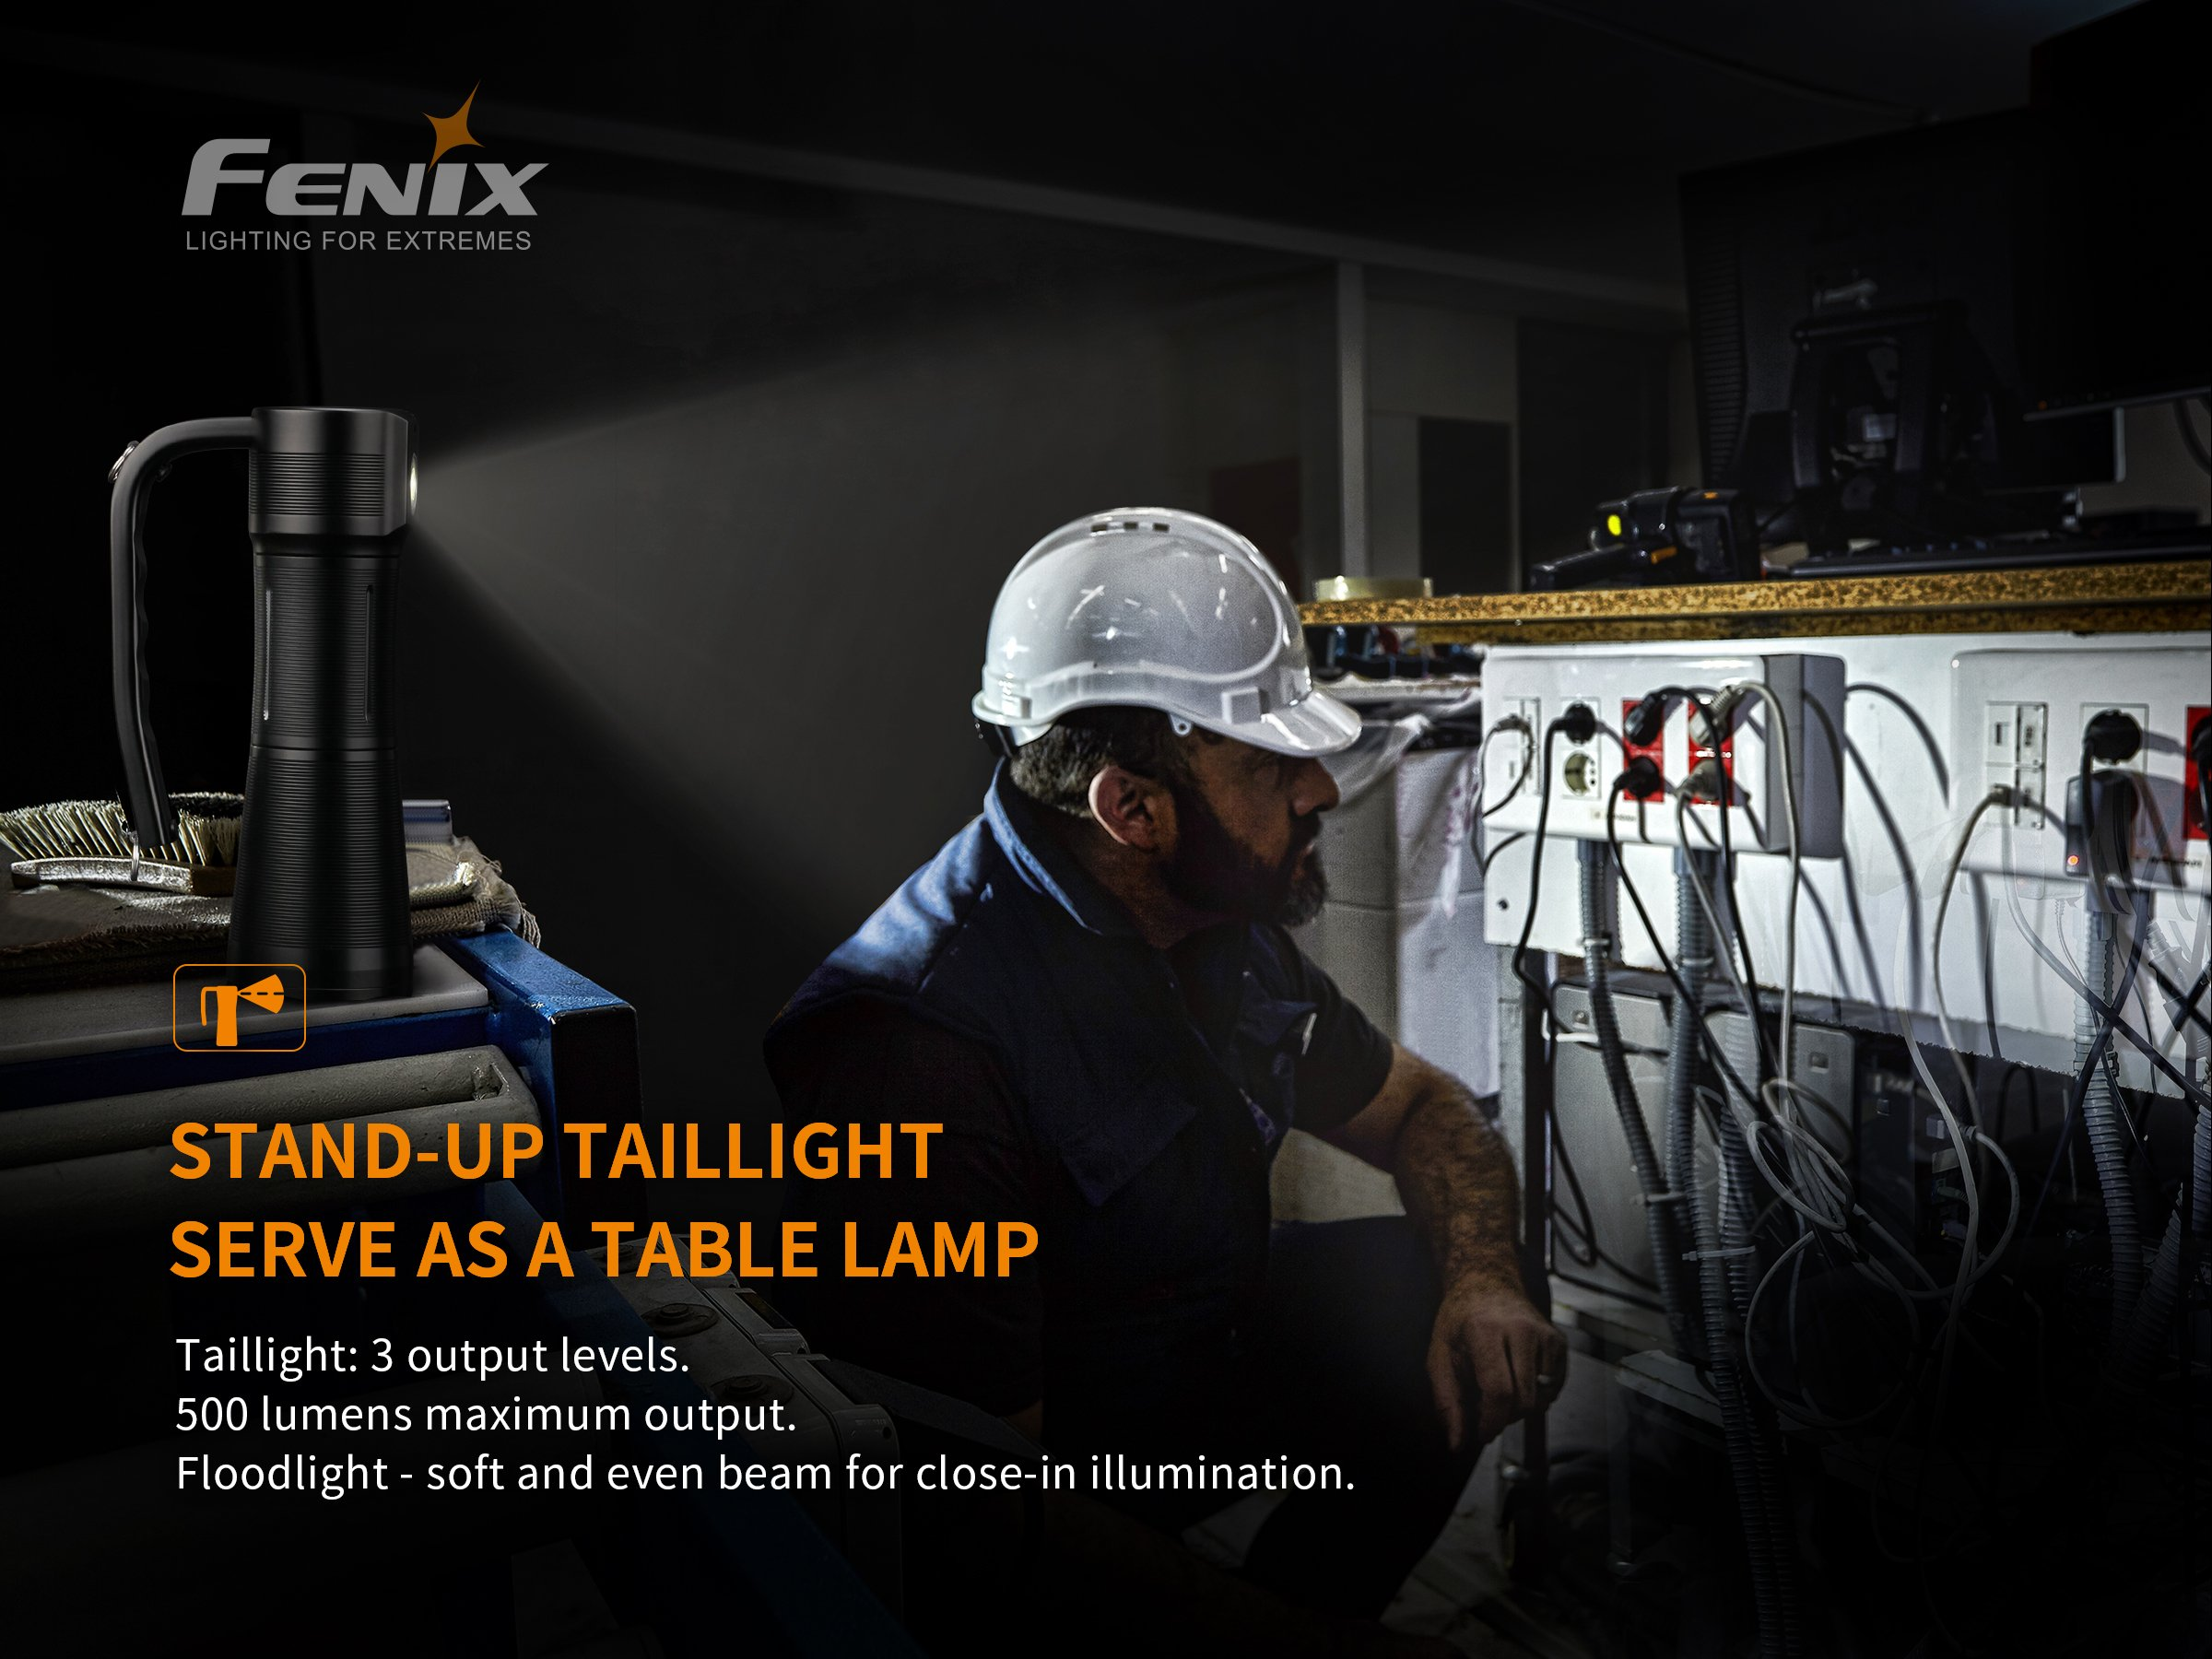 Fenix WT50R Multipurpose Handheld Searchlight